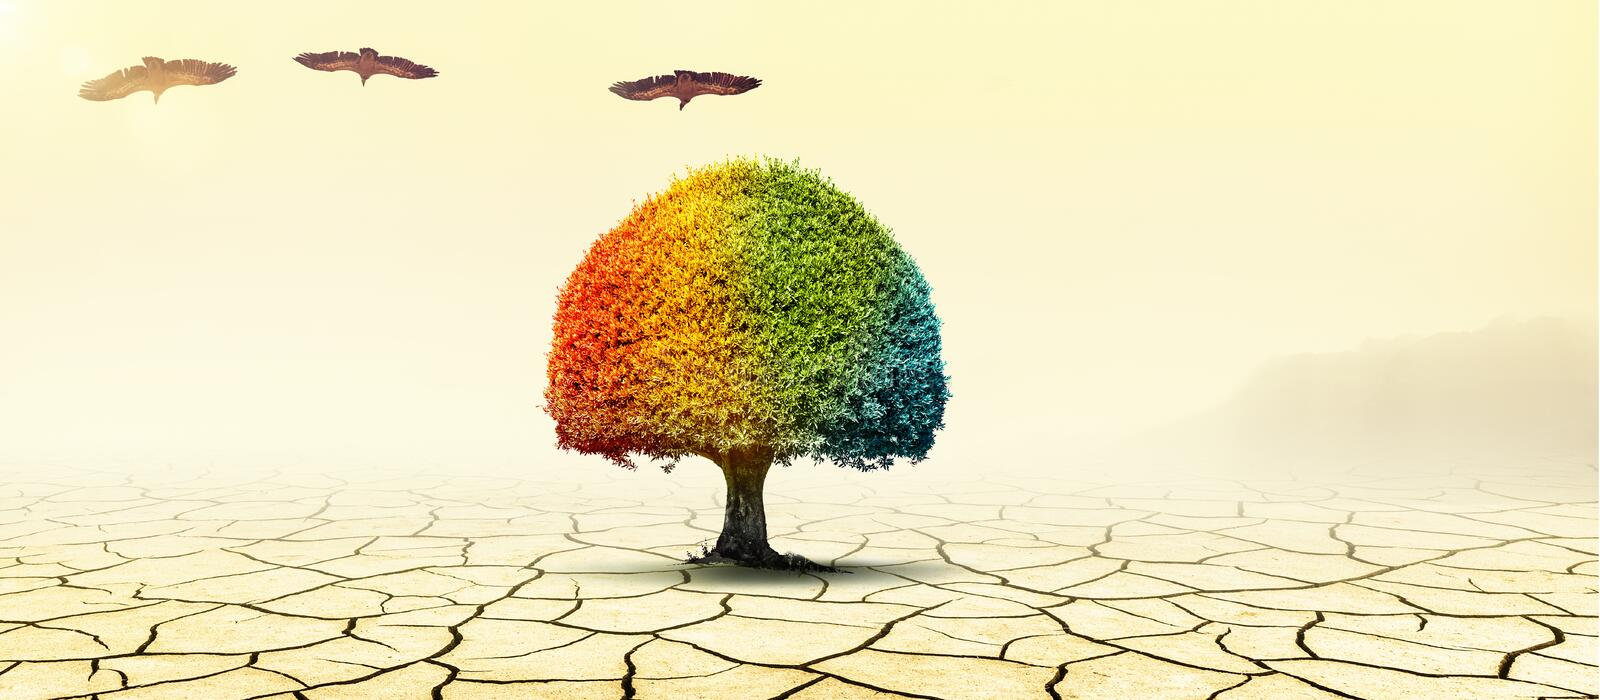 Tree in a desert and a green meadow in climate change stock image